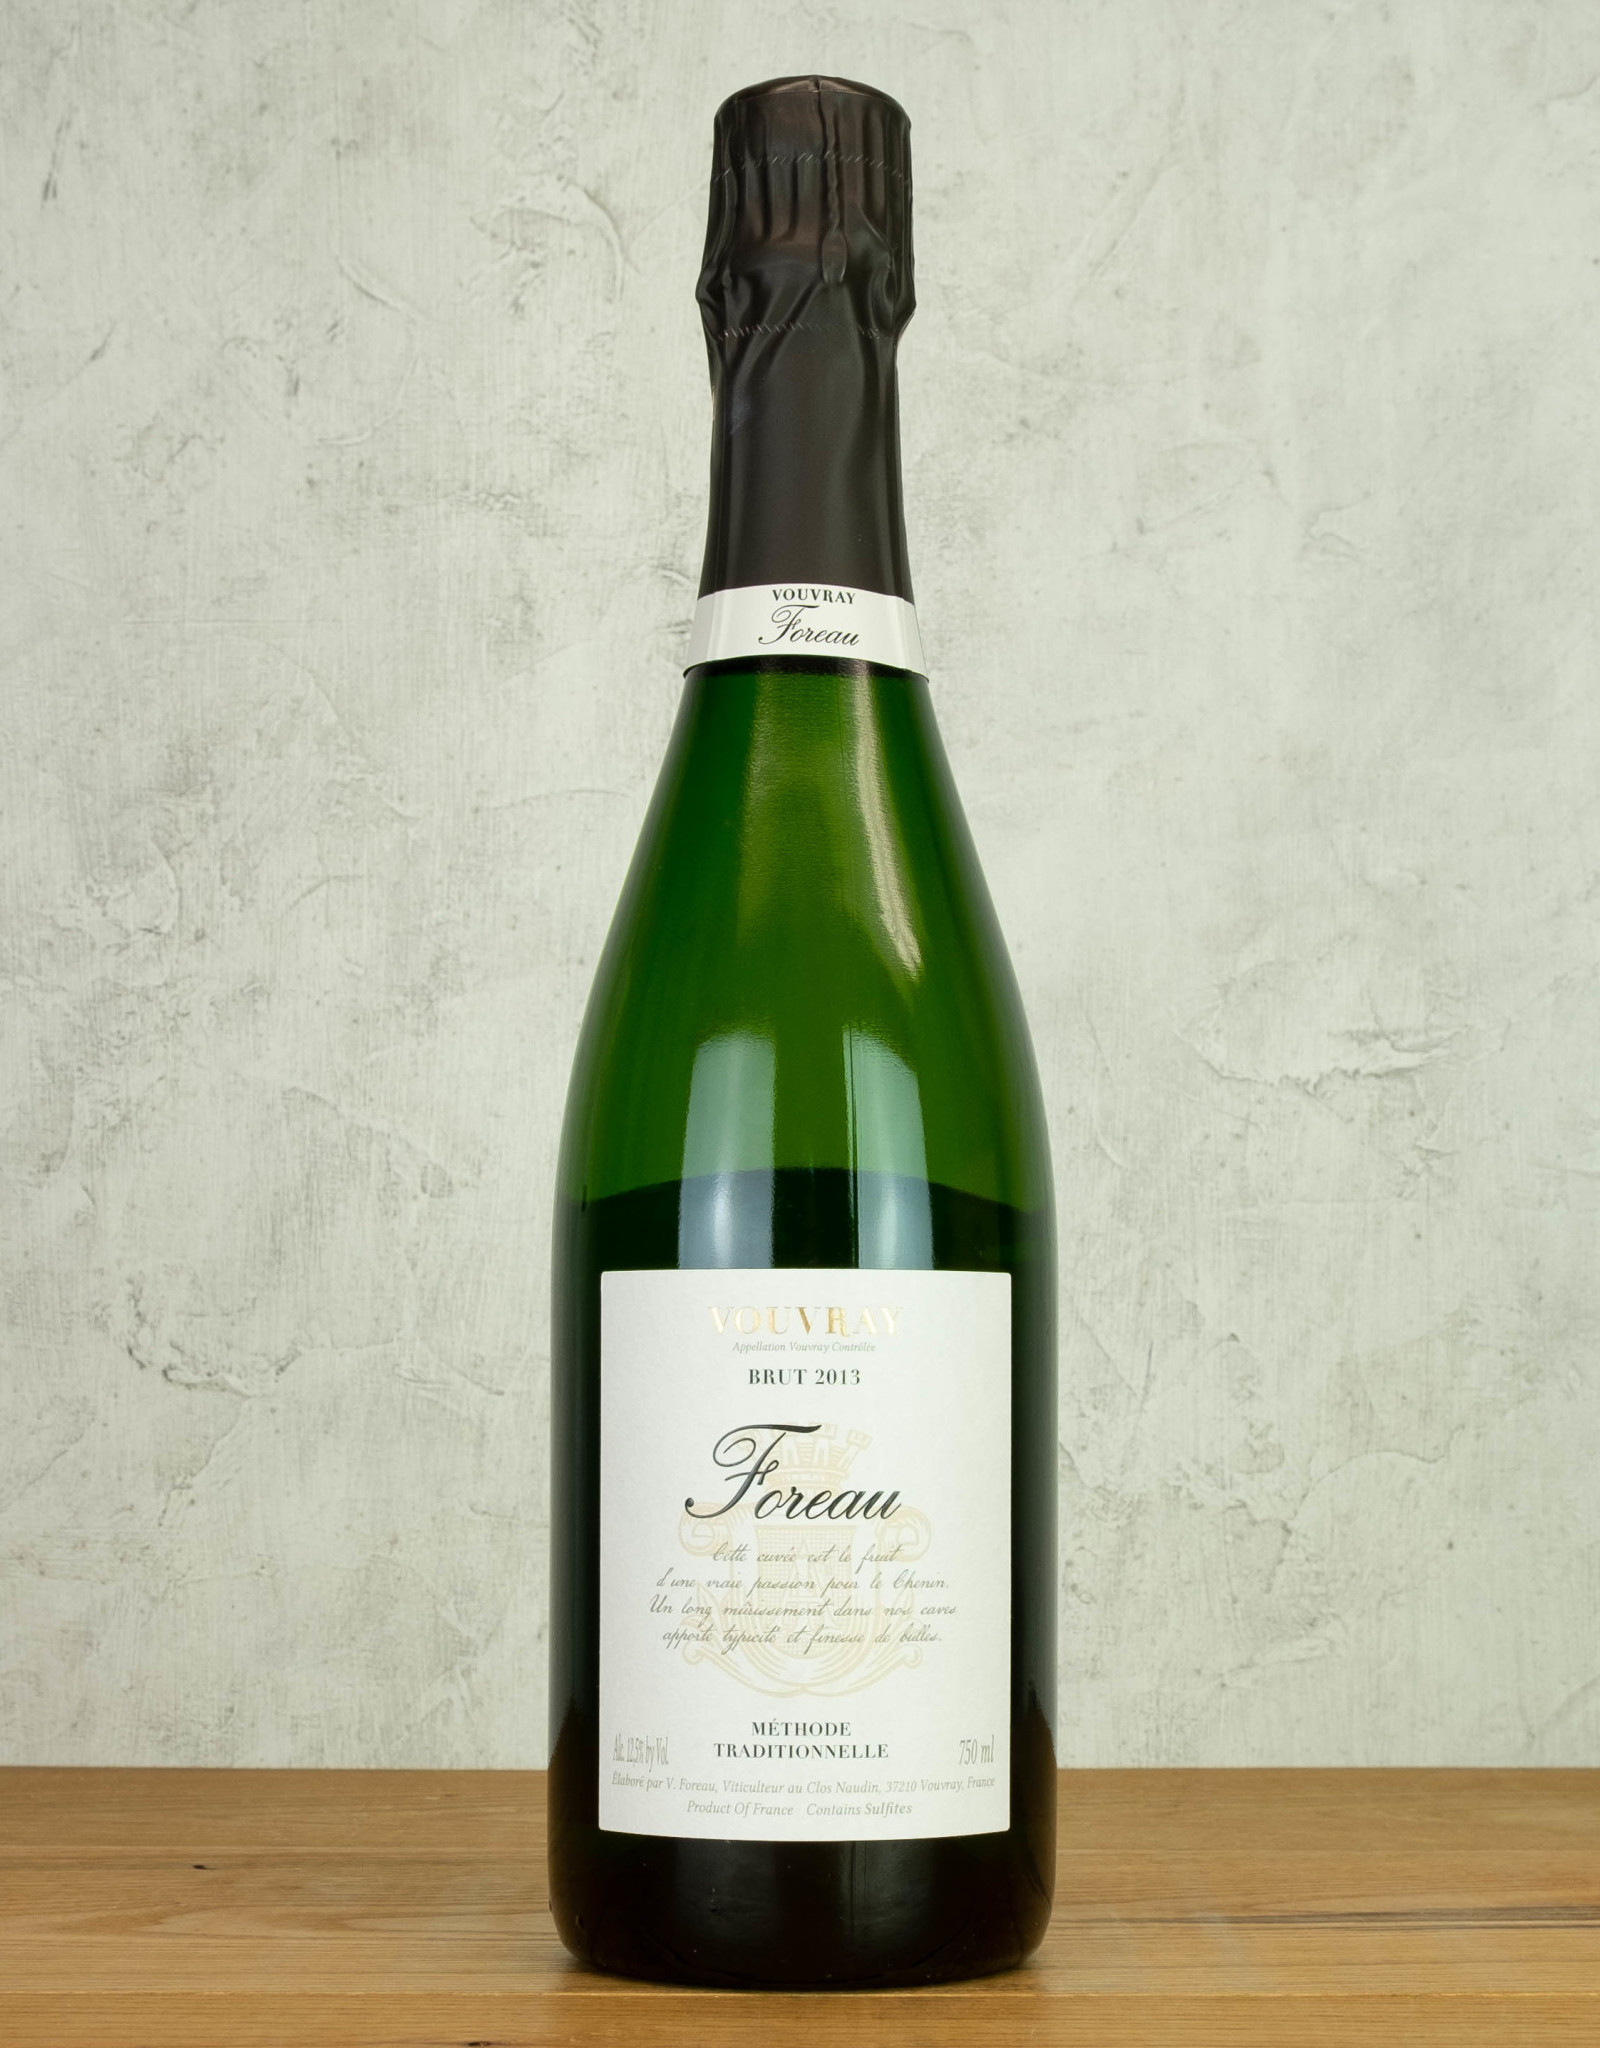 Foreau Vouvray Brut 2013